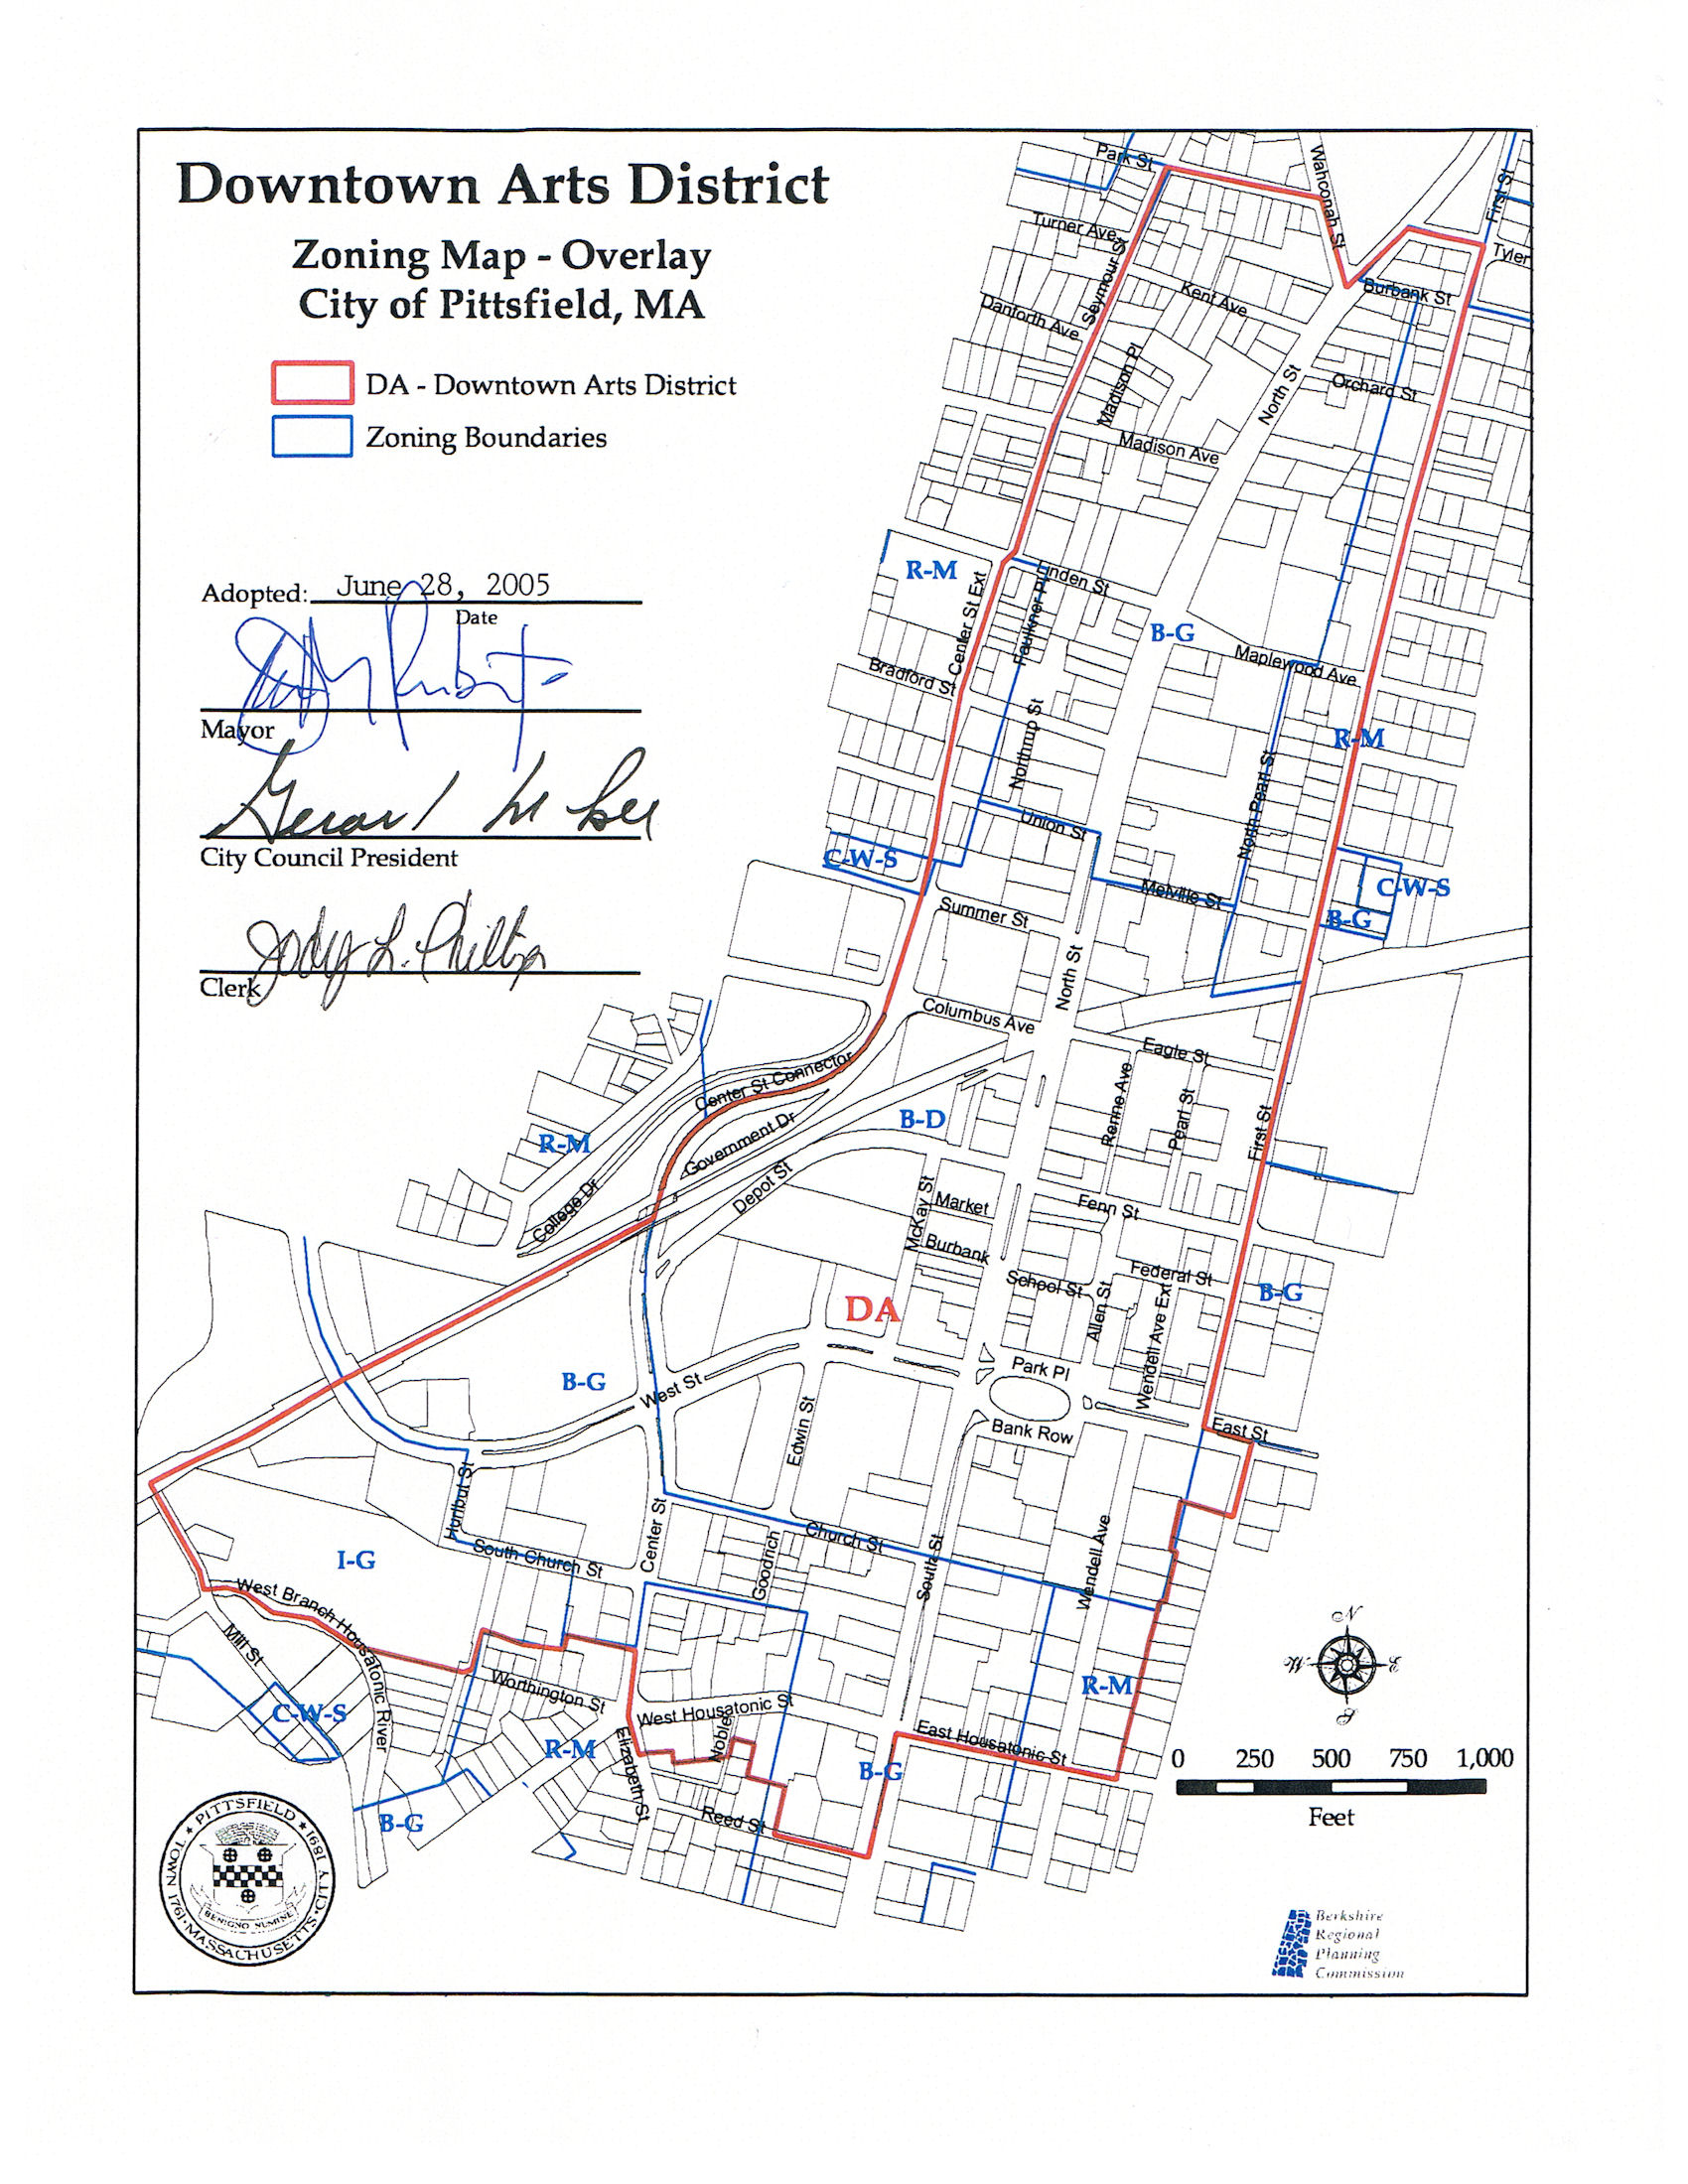 Pittsfield Machusetts City Map - Pittsfield Machusetts ... on city planning, city of milan ga, city of lake village arkansas, city of audubon iowa, city road, city of oregon wisconsin, city of galva il, city of potwin kansas, city intersection, city of hamilton michigan, city of arcadia fl, city drawing, city of austin etj, city street, city neighborhood, city of newburgh ny, city of sandpoint idaho, city restaurants, city diagram, city of alexandria louisiana,